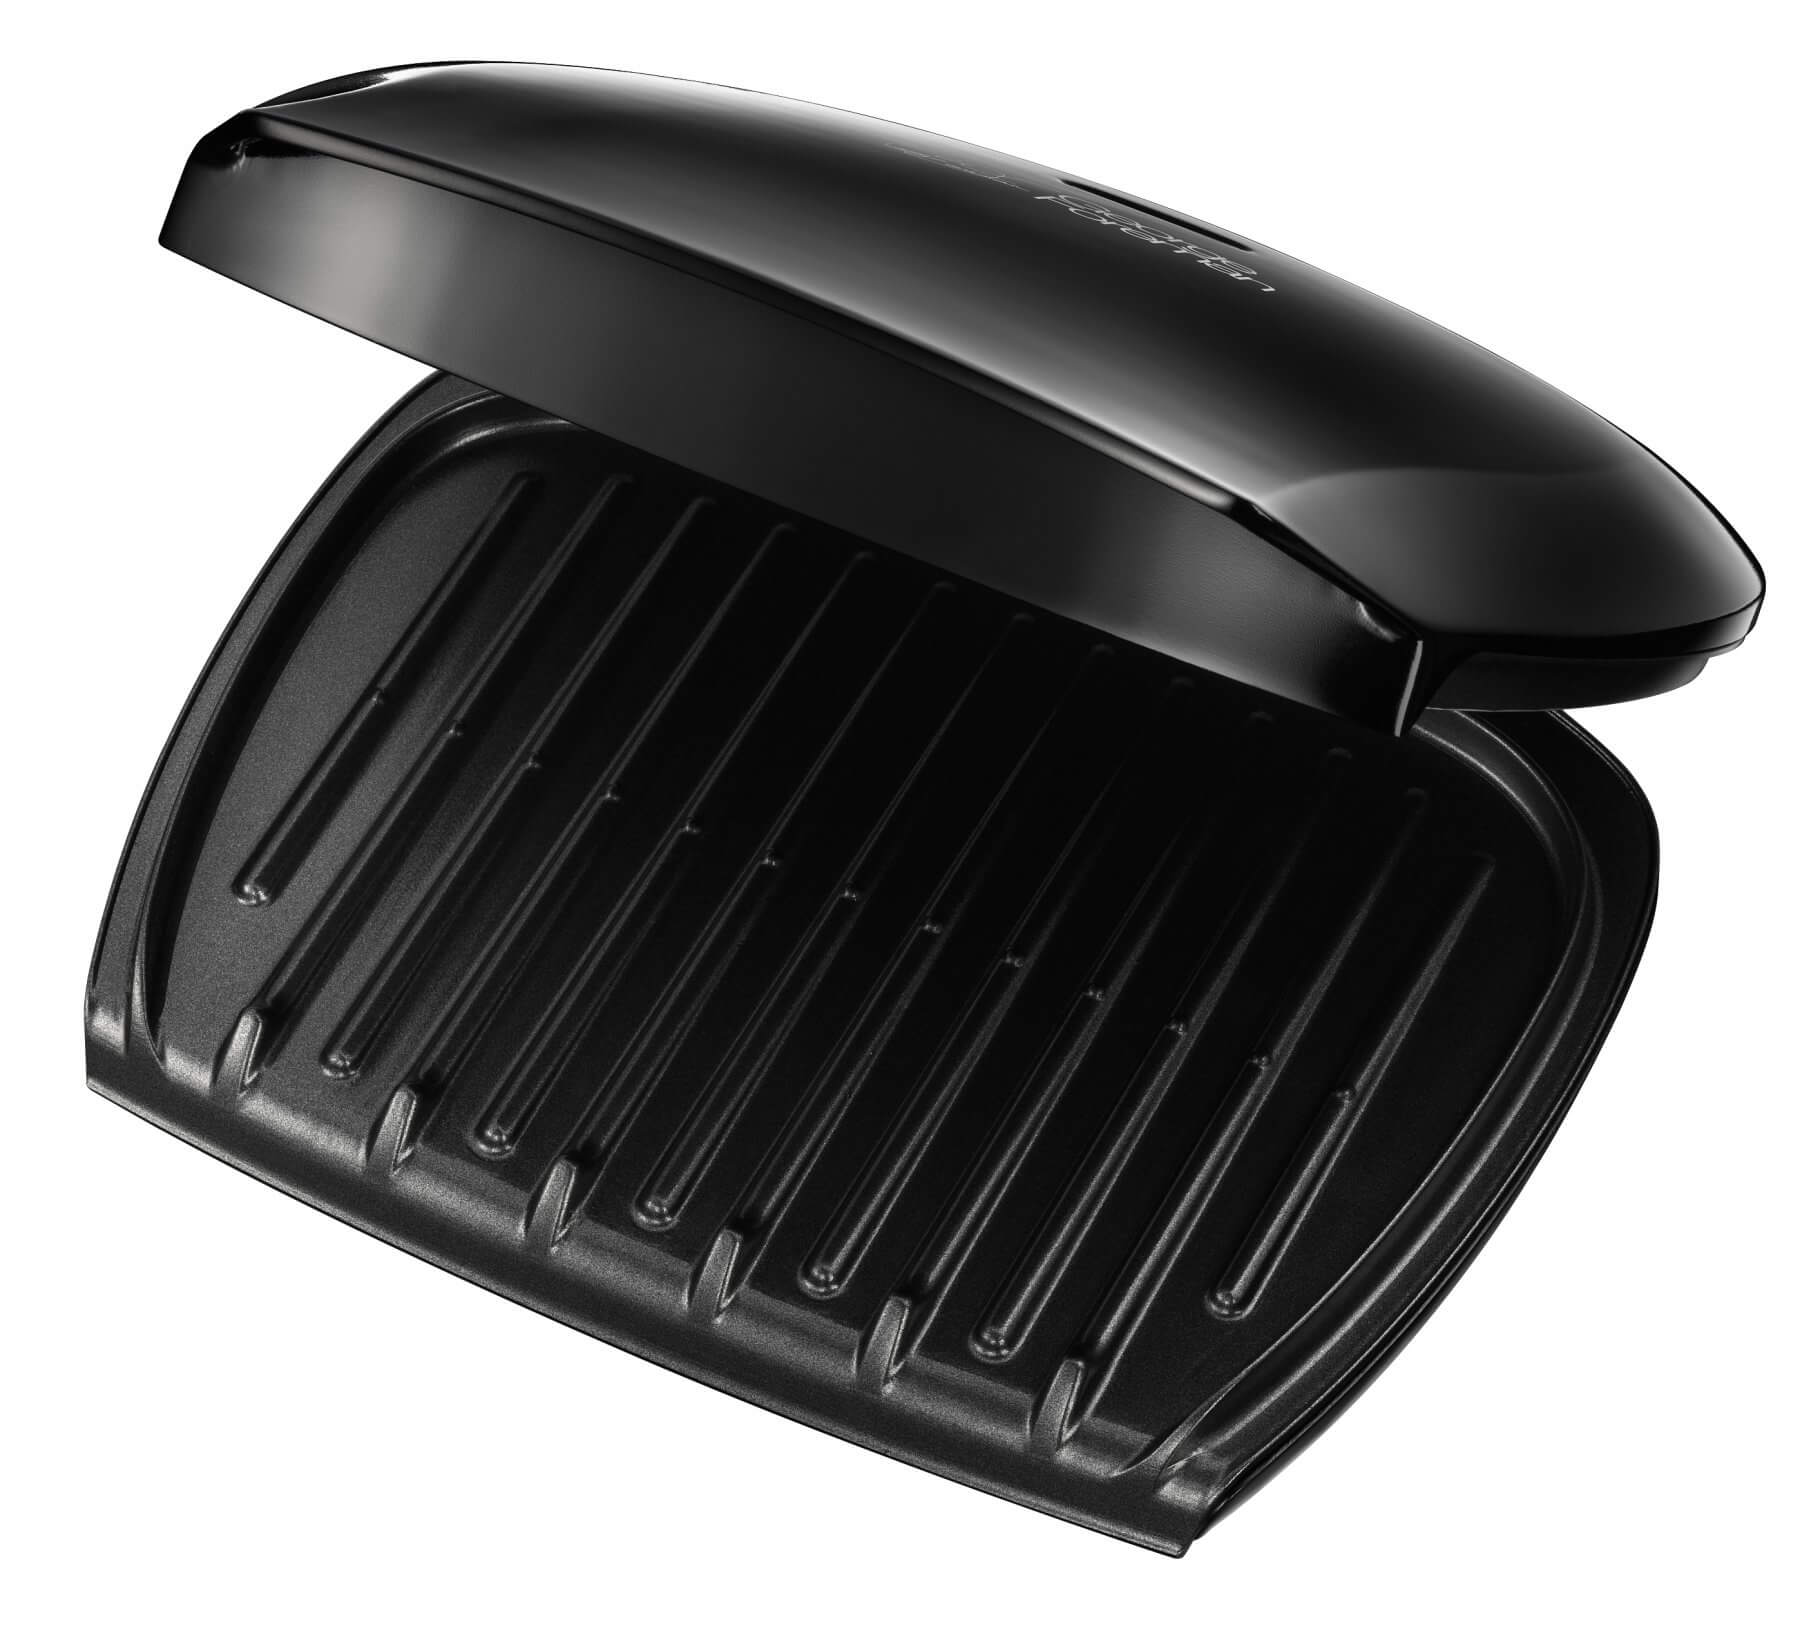 Family George Foreman GFX Grill 18874-56